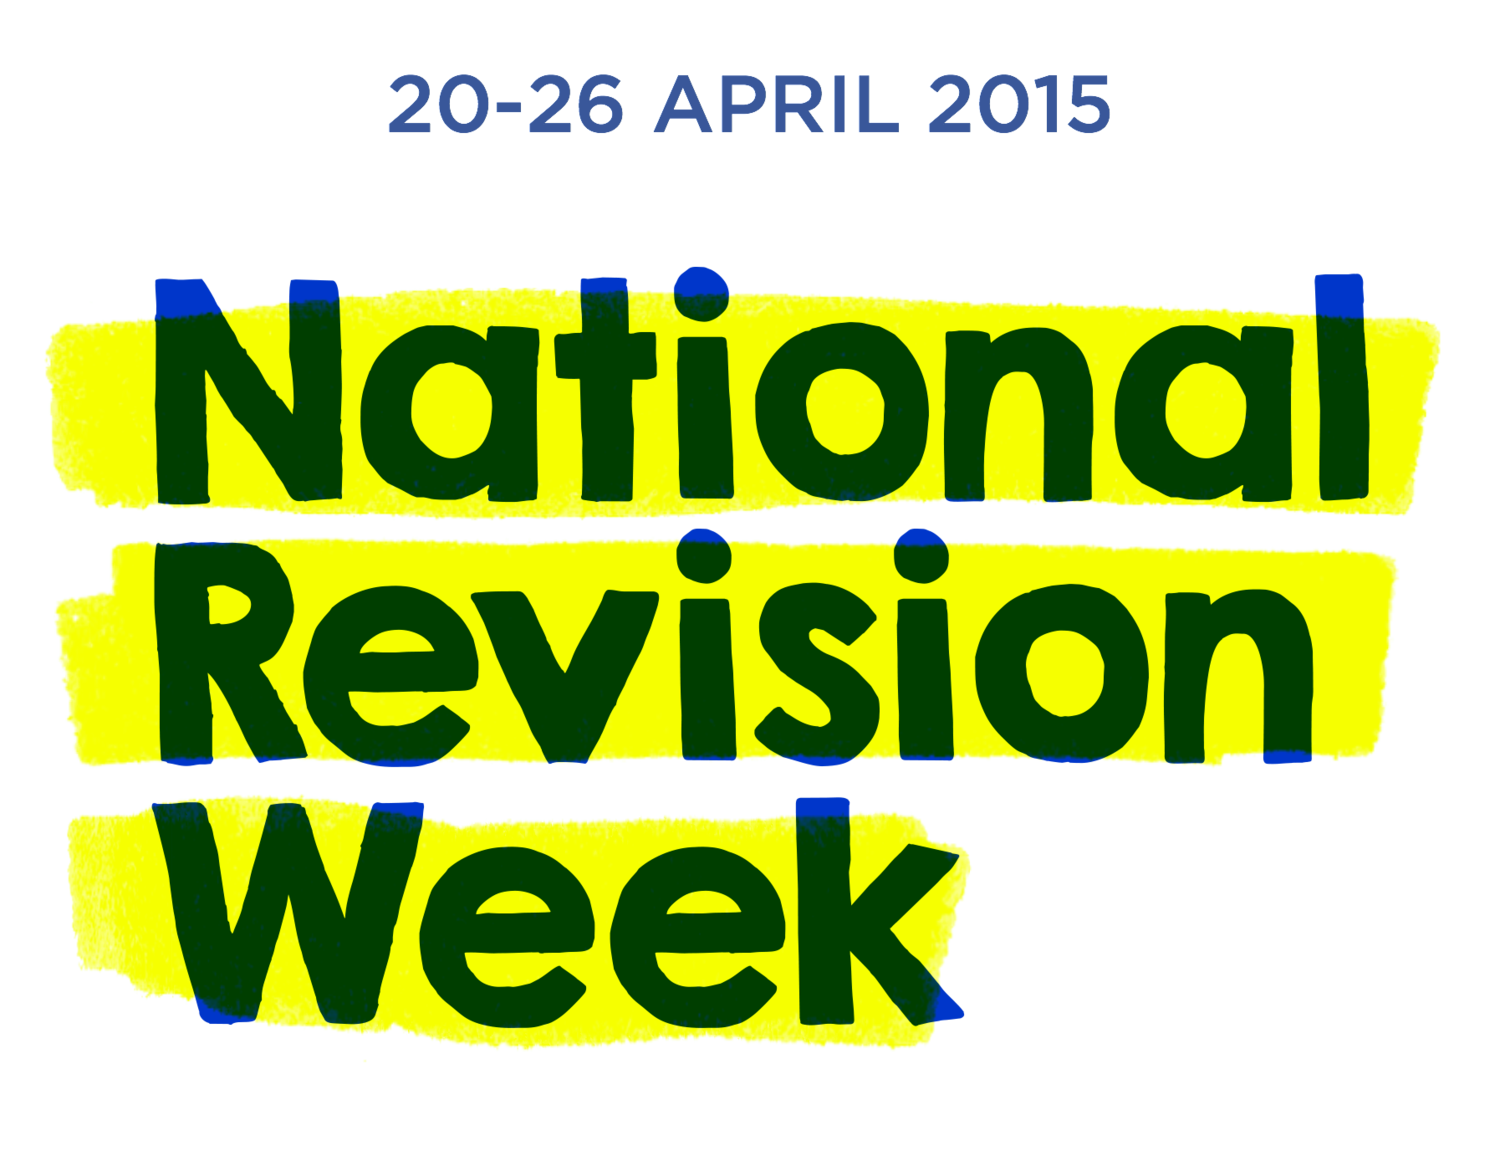 National Revision Week